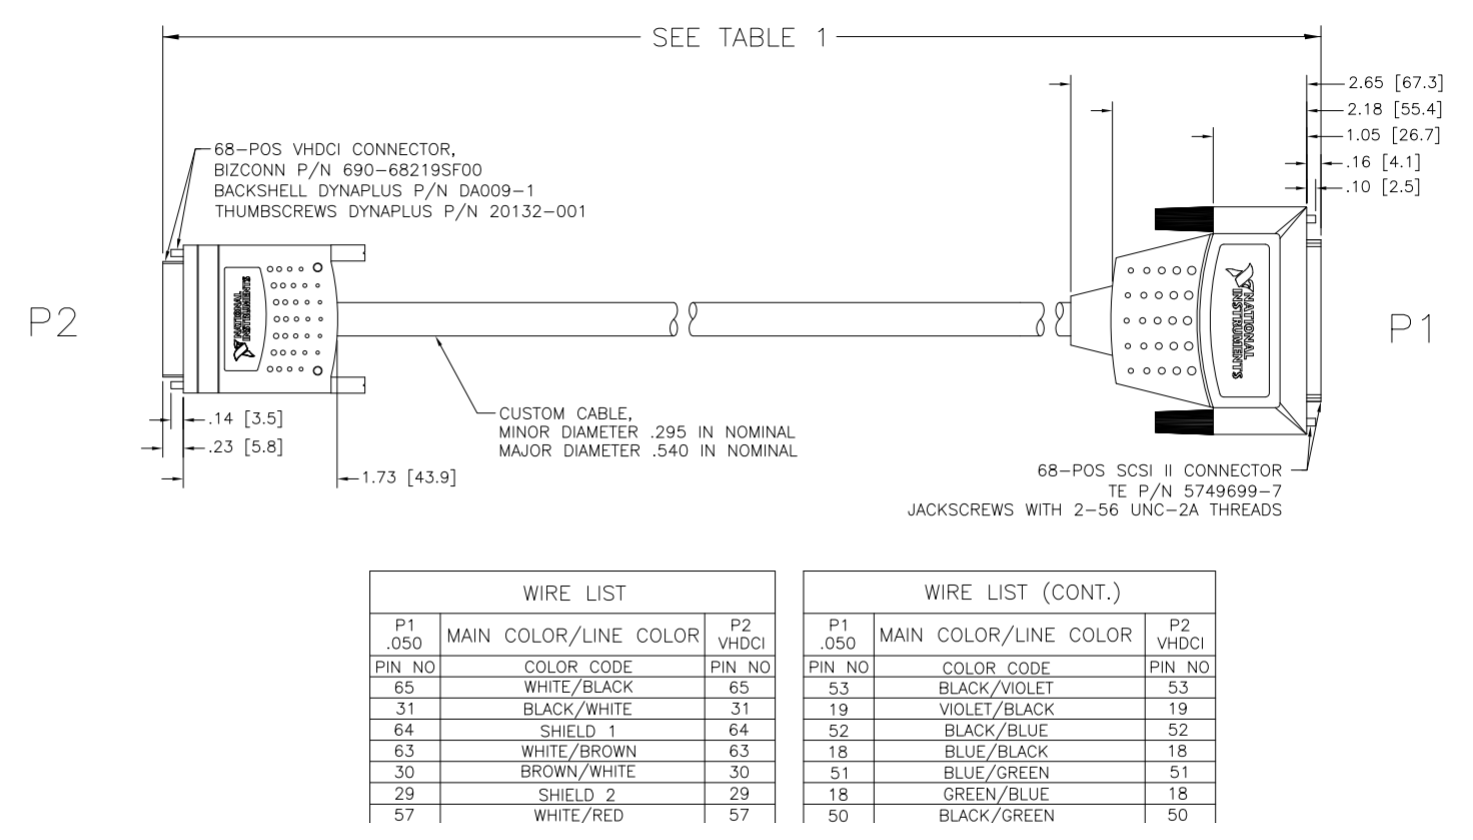 Scsi To Rj45 Wiring Diagram Completed Diagrams For Rj 45 Simple Schema Plug